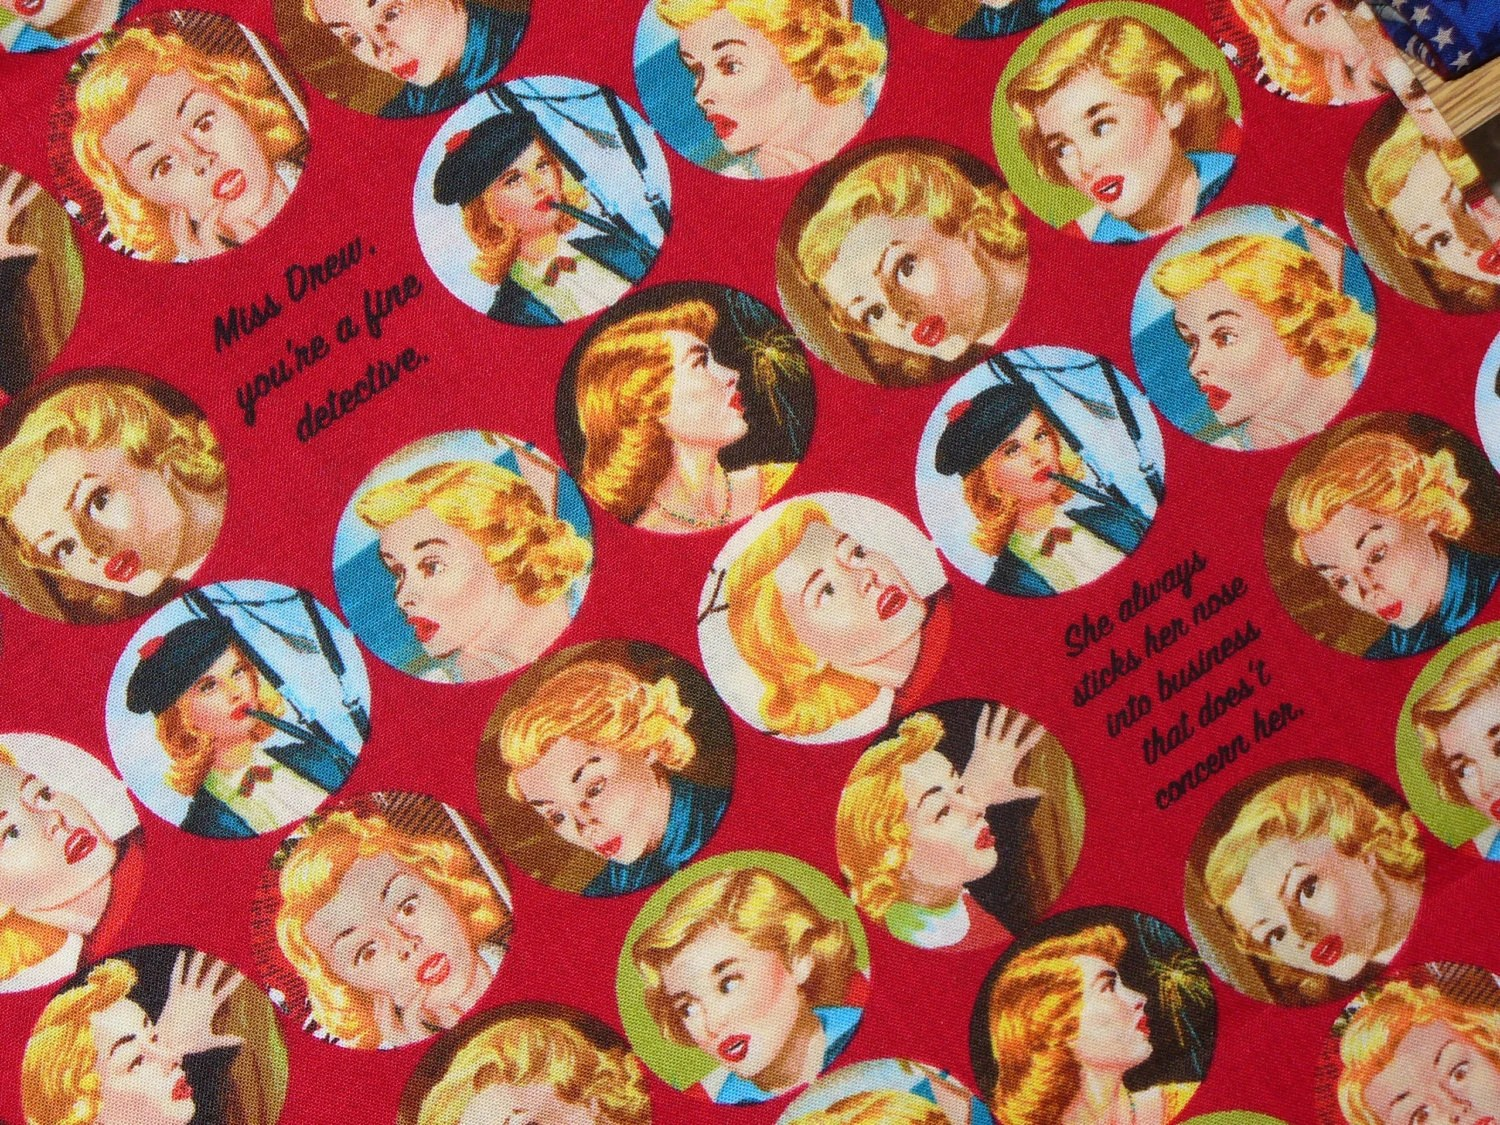 Nancy Drew Fabric By Trinketsintheattic On Etsy